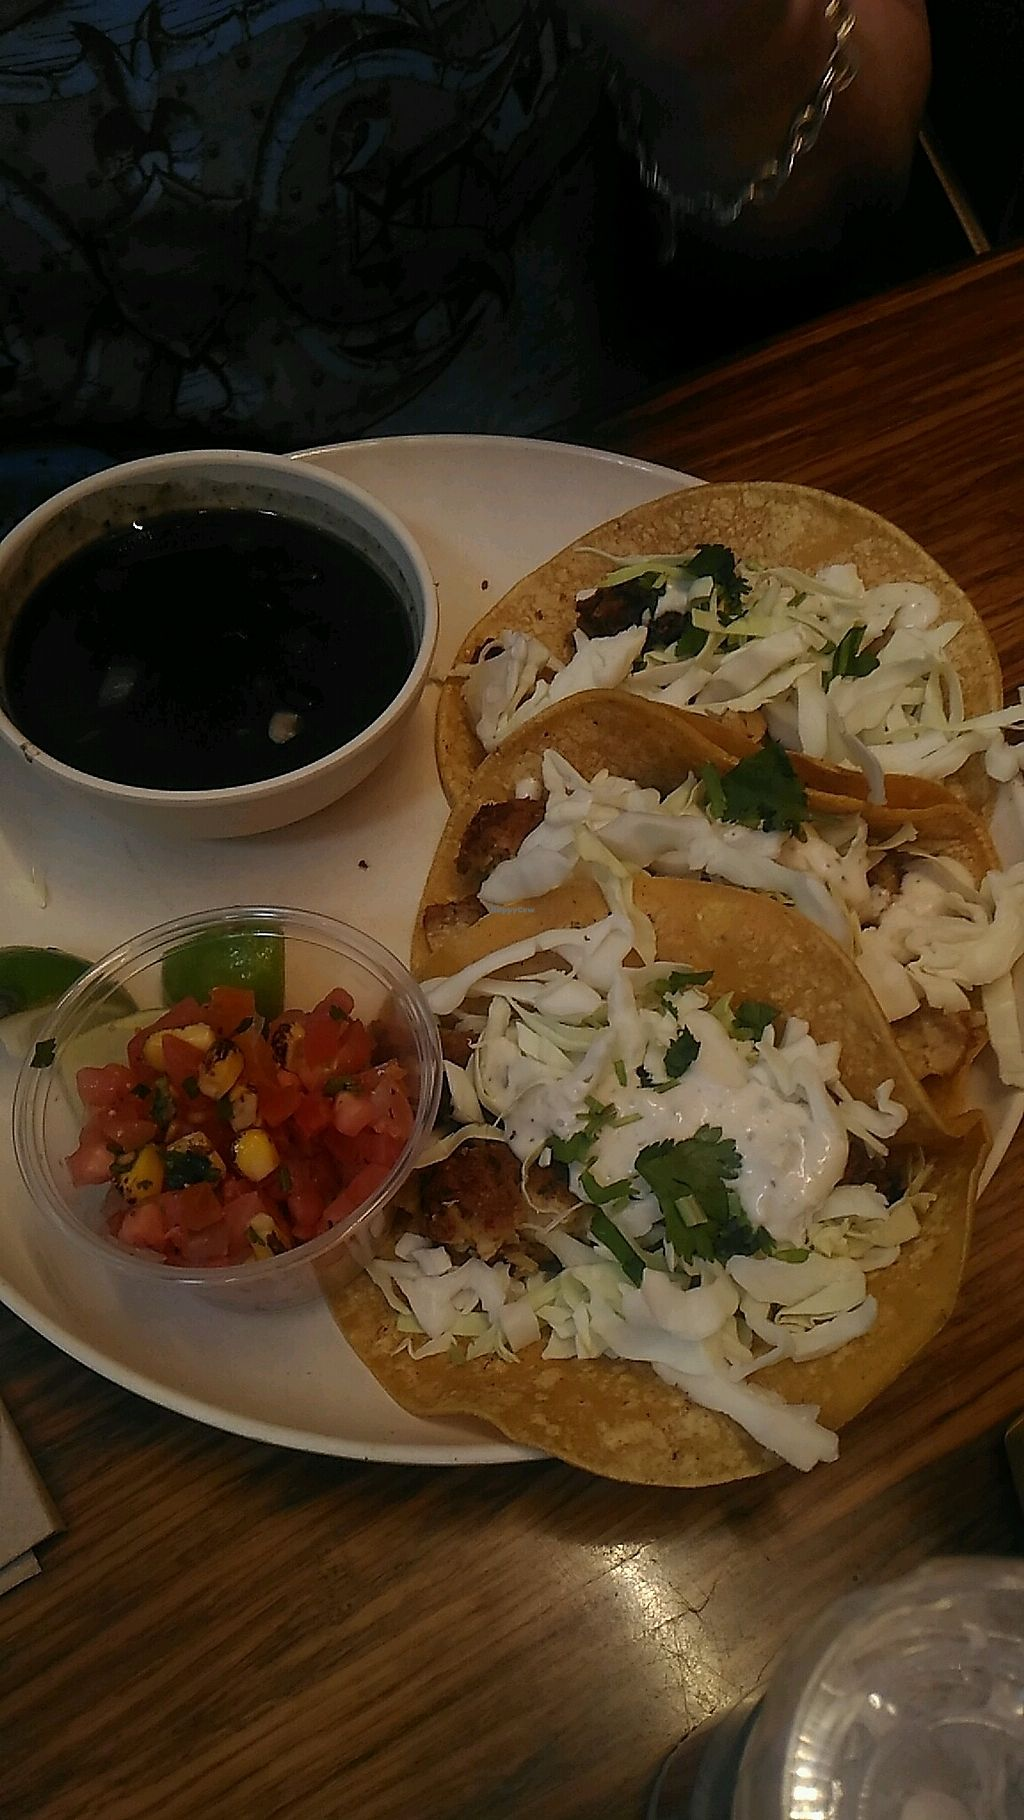 """Photo of Veggie Grill  by <a href=""""/members/profile/QuothTheRaven"""">QuothTheRaven</a> <br/>fish tacos <br/> March 17, 2018  - <a href='/contact/abuse/image/33046/371577'>Report</a>"""